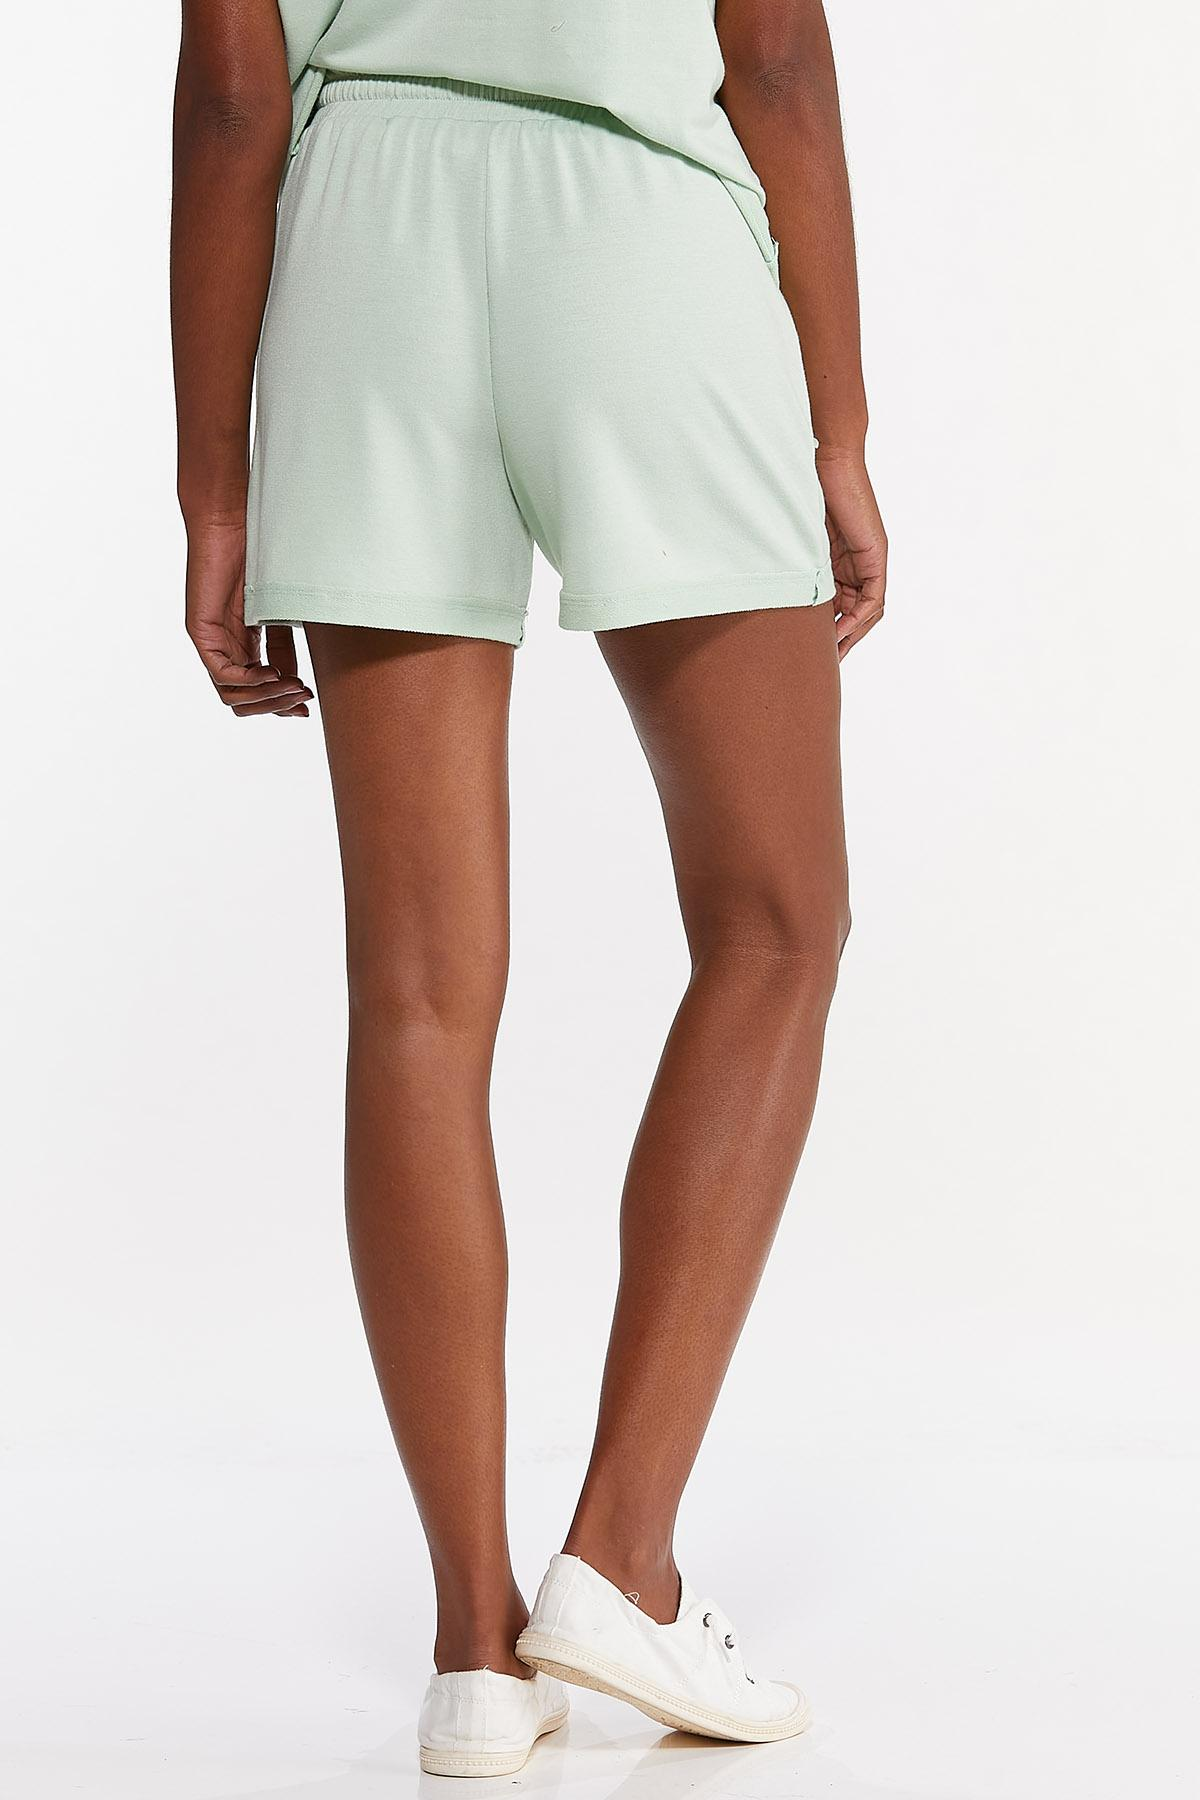 French Terry Shorts (Item #44633370)